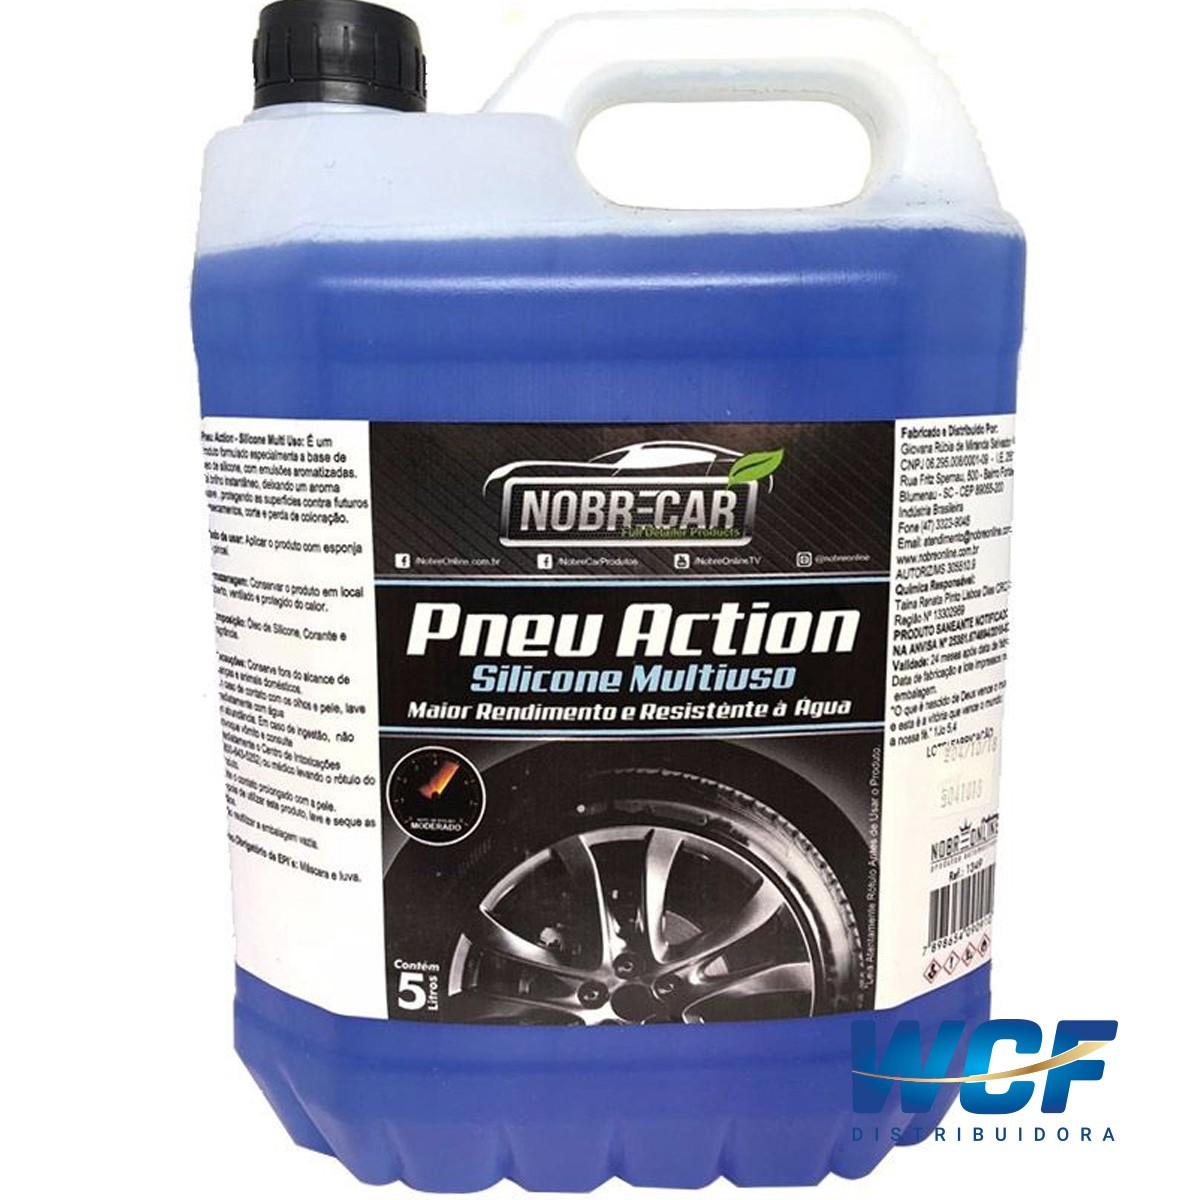 NOBRE PNEU ACTION 5 LT